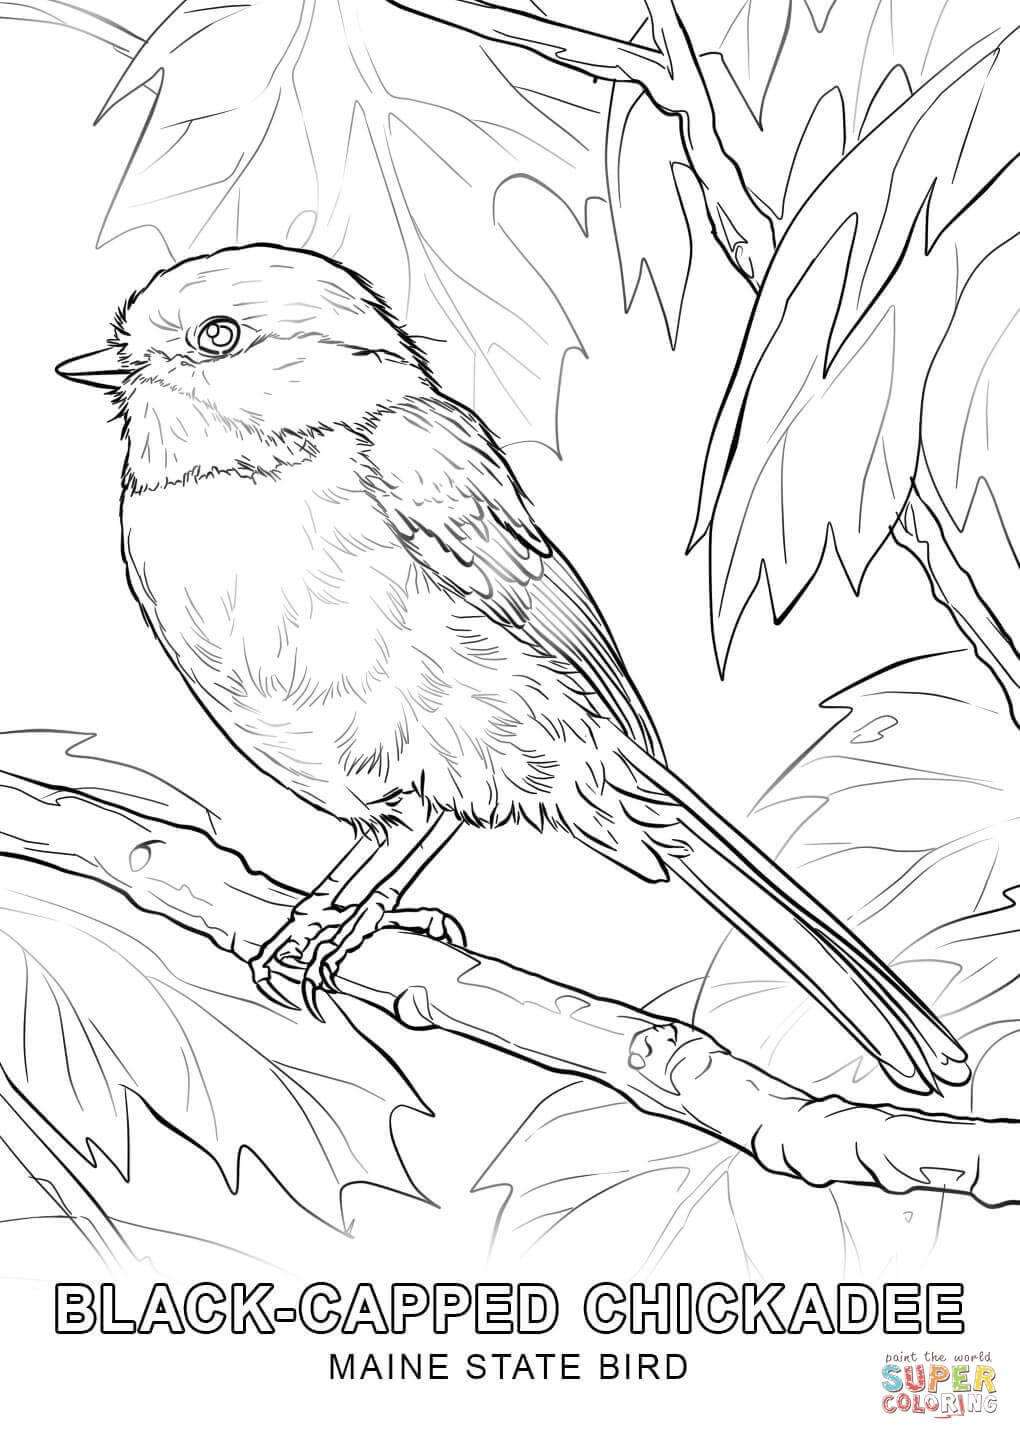 Maine State Bird Coloring Page Free Printable Coloring Pages Bird Coloring Pages Coloring Pages Free Coloring Pages